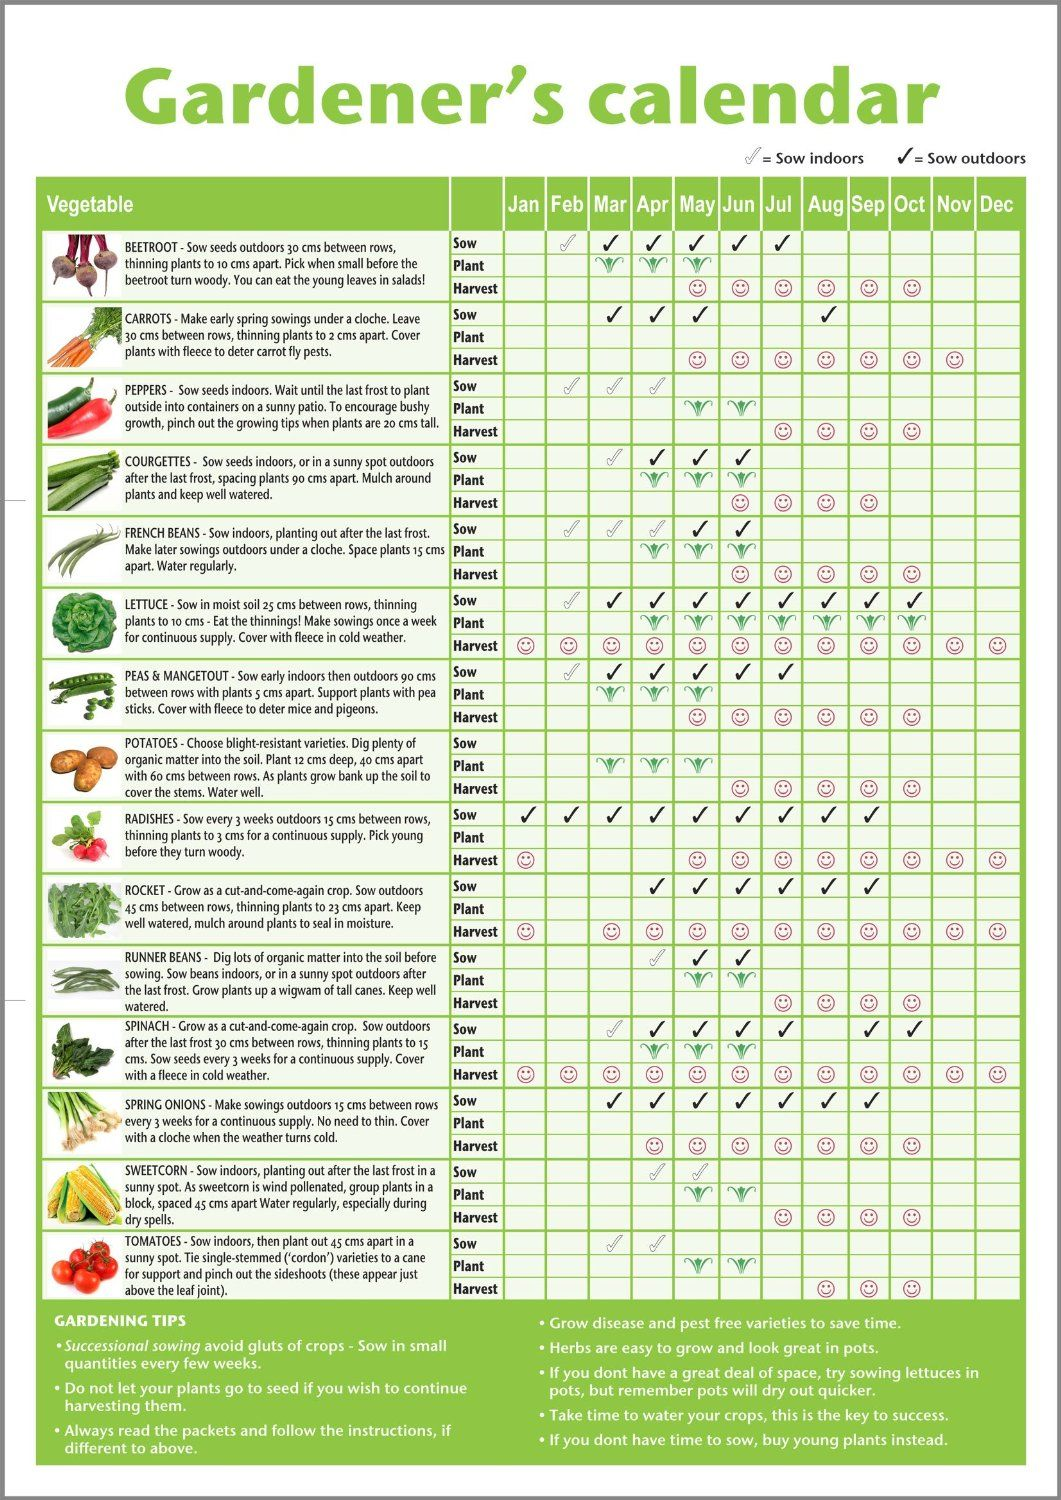 A3 novice gardenersbeginners vegetable growing gardening